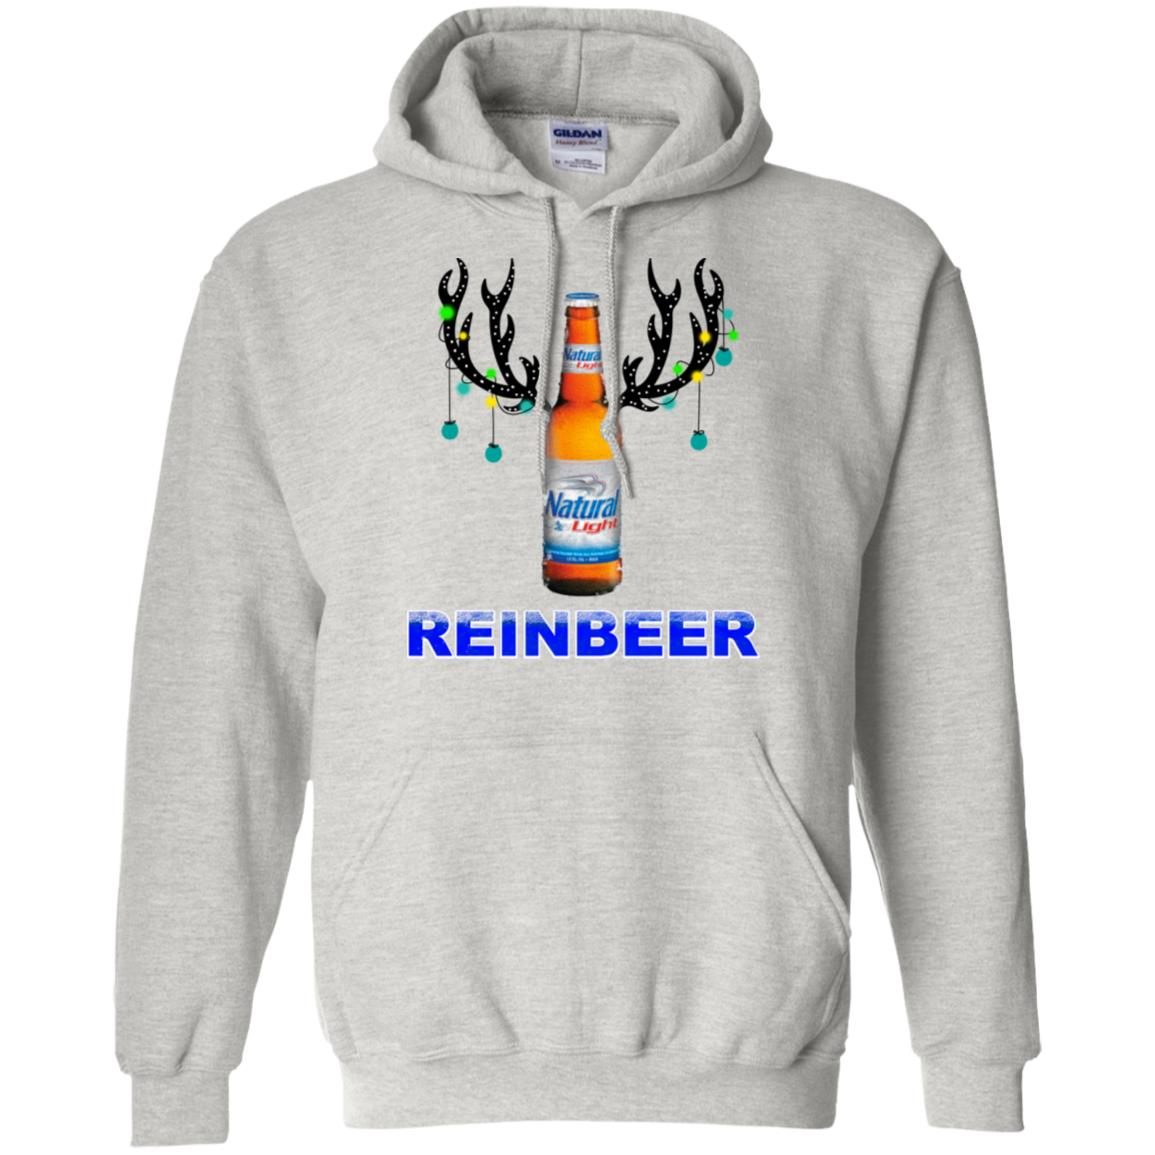 Reinbeer Natural Light Christmas Sweatshirt Hoodie Long Sleeve